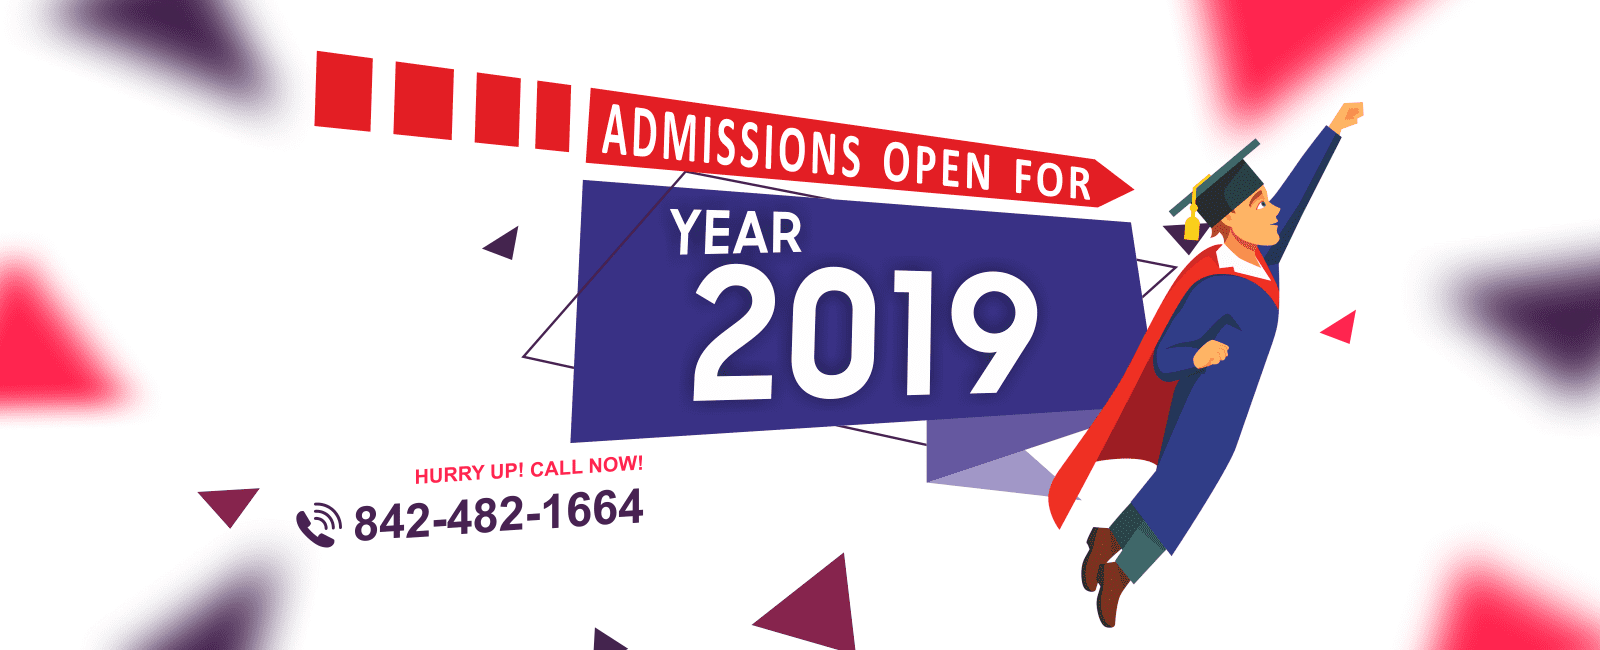 new admission open